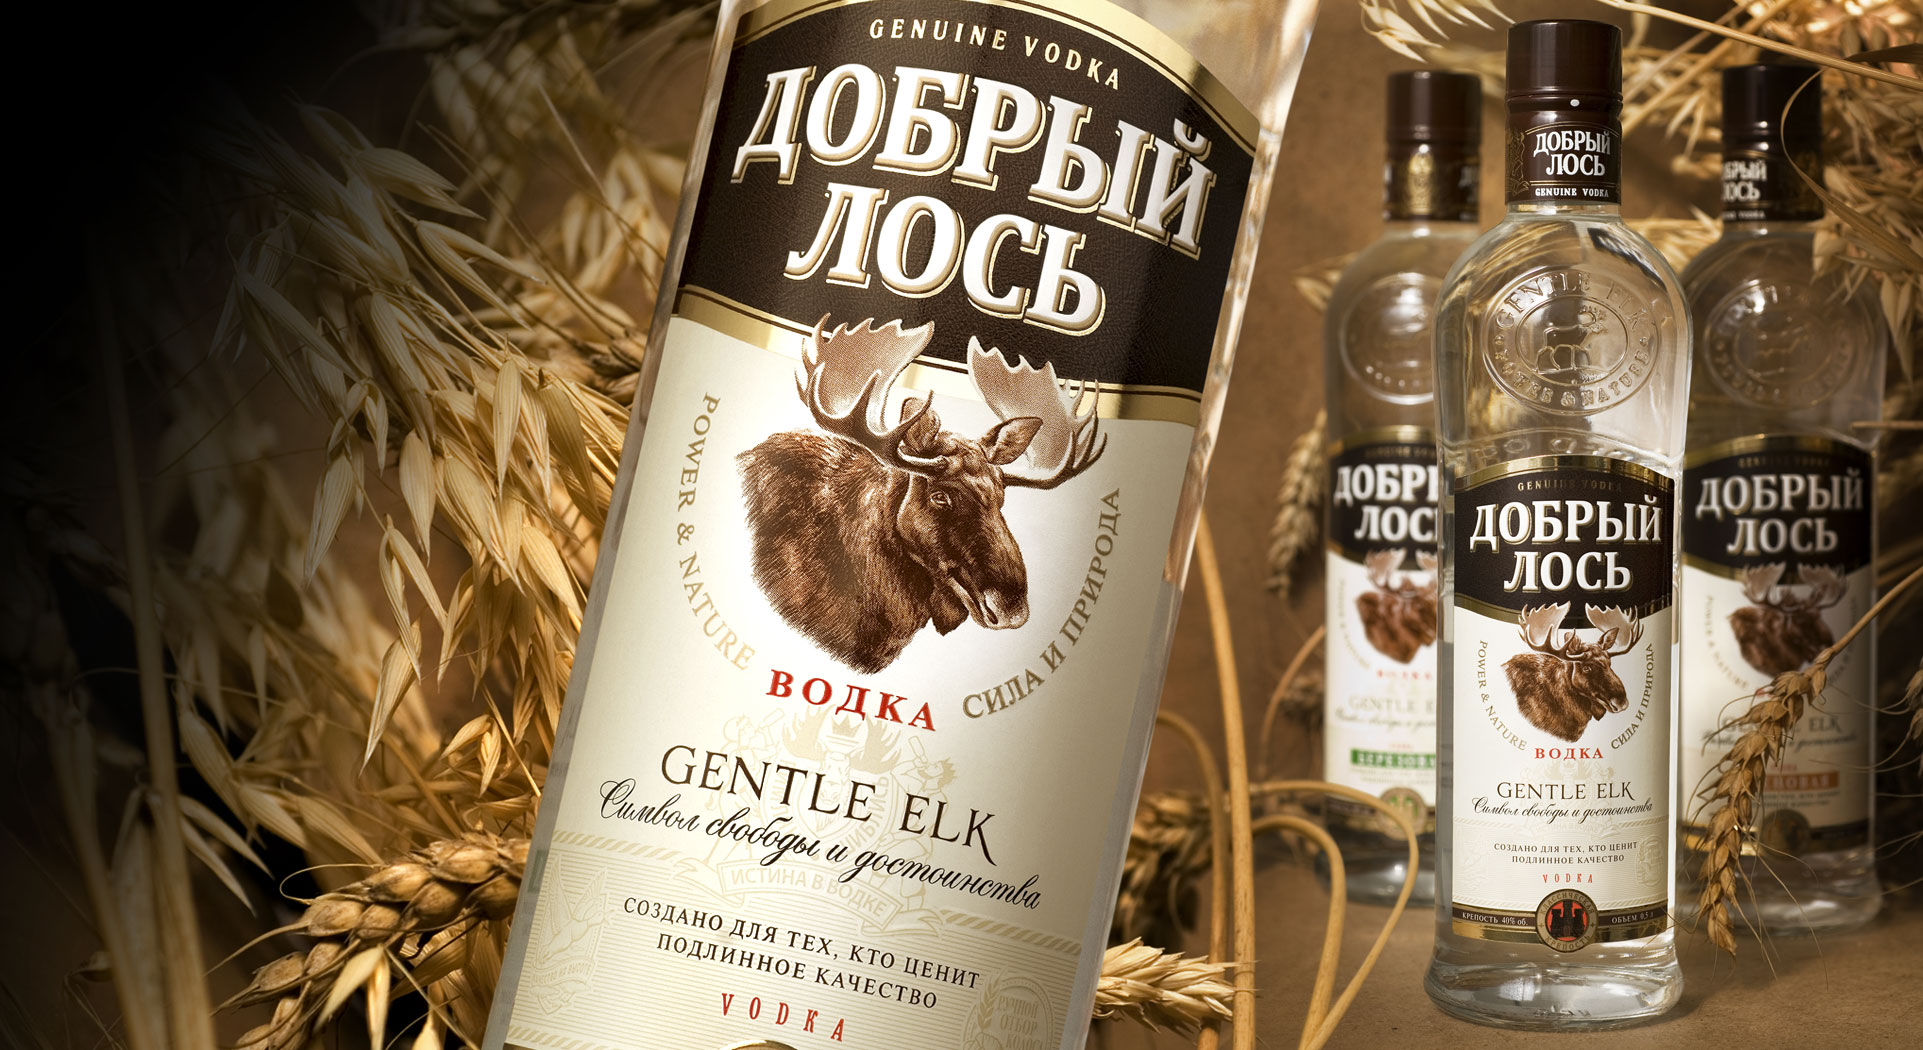 Good vodka Gentle Elk